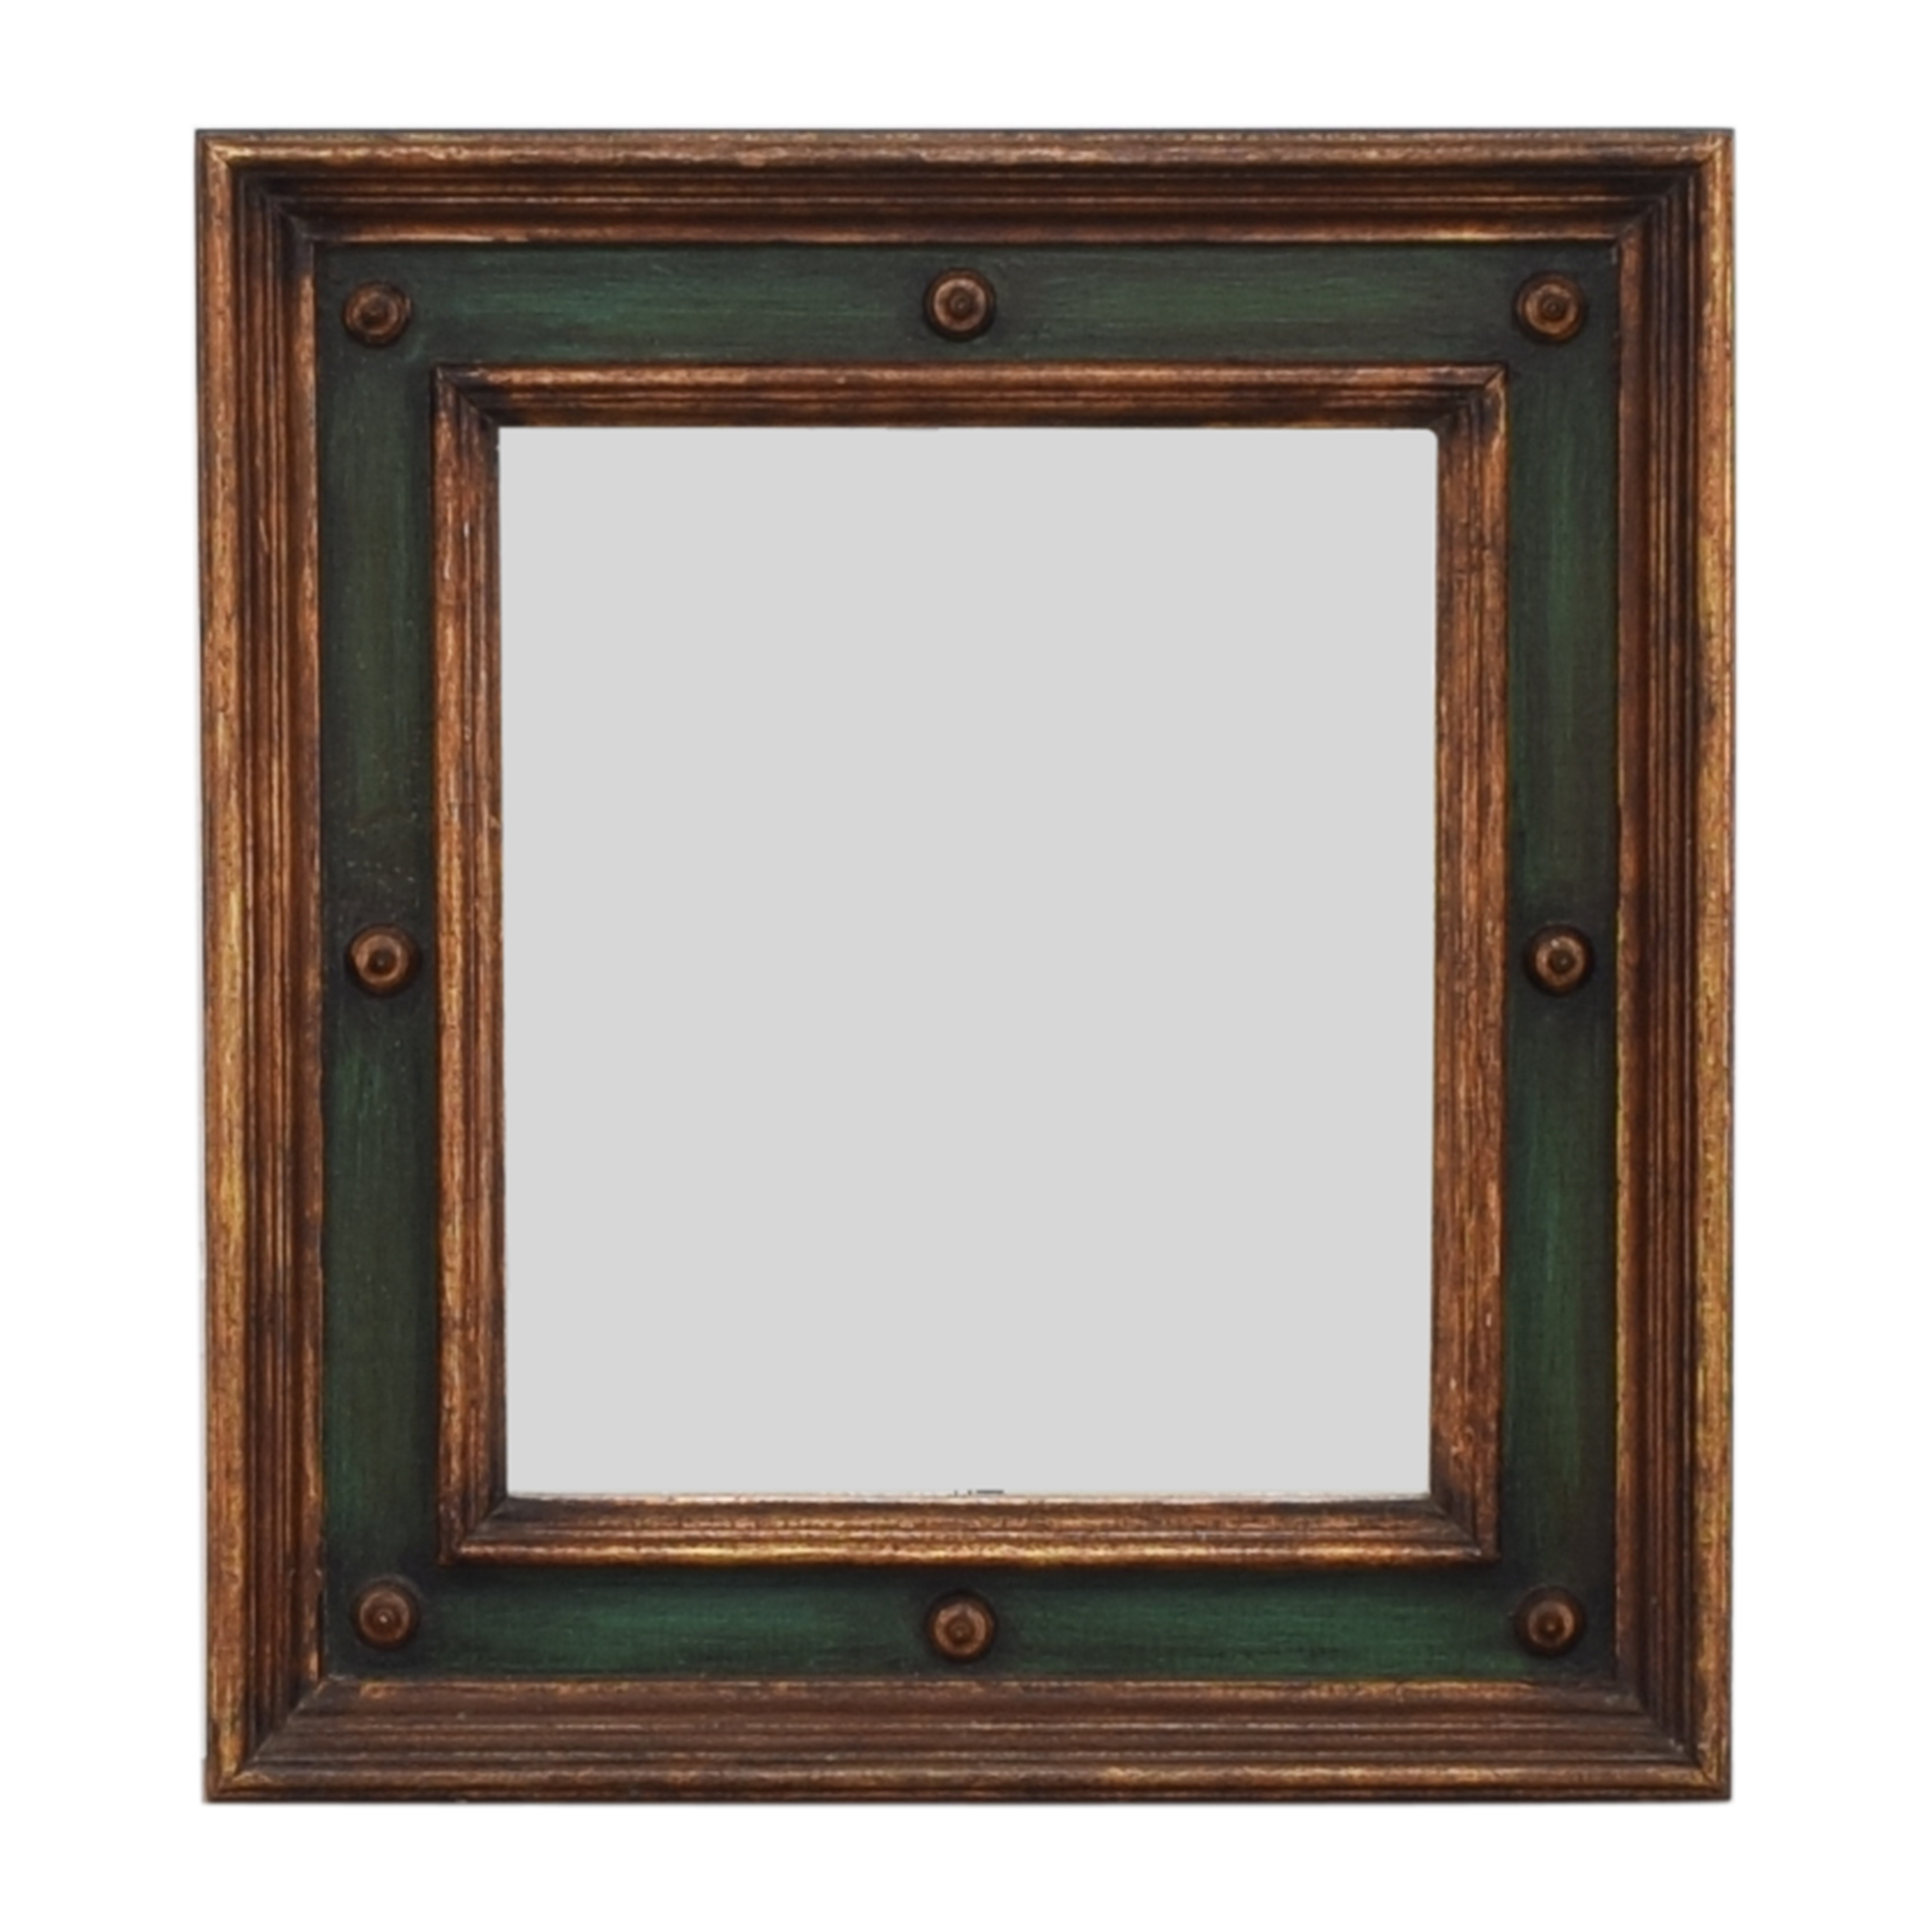 buy Framed Decorative Wall Mirror  Mirrors